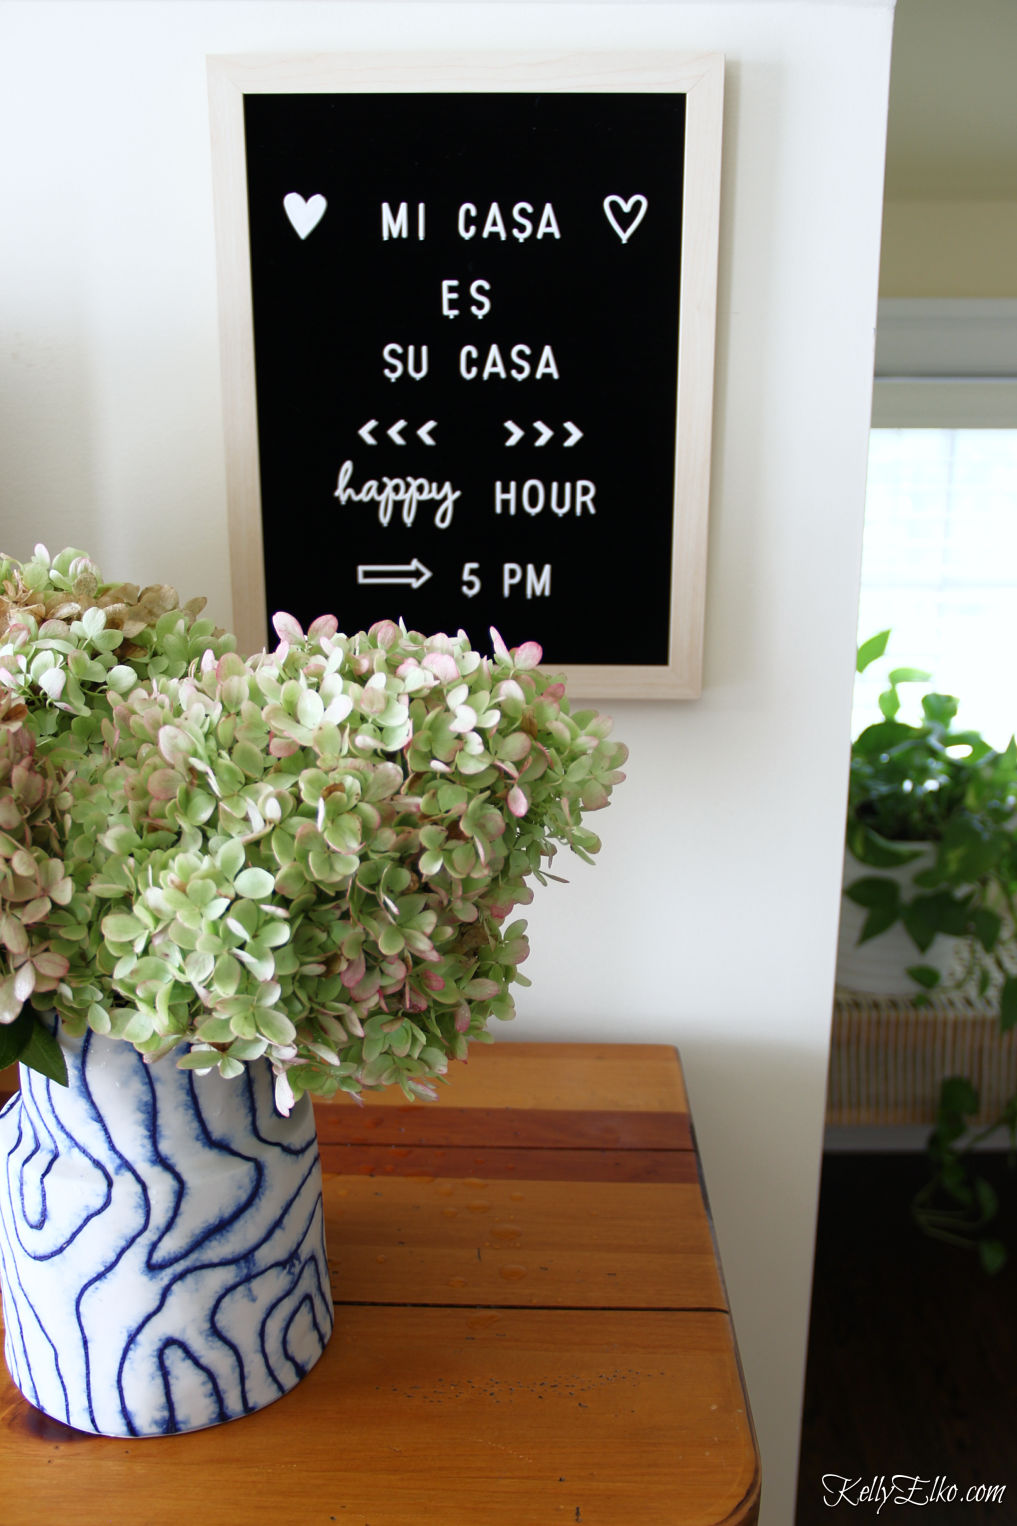 Little details in this guest bedroom include a letter board for adding fun notes kellyelko.com #letterboard #guestbedroom #bedroomdecor #hydrangeas